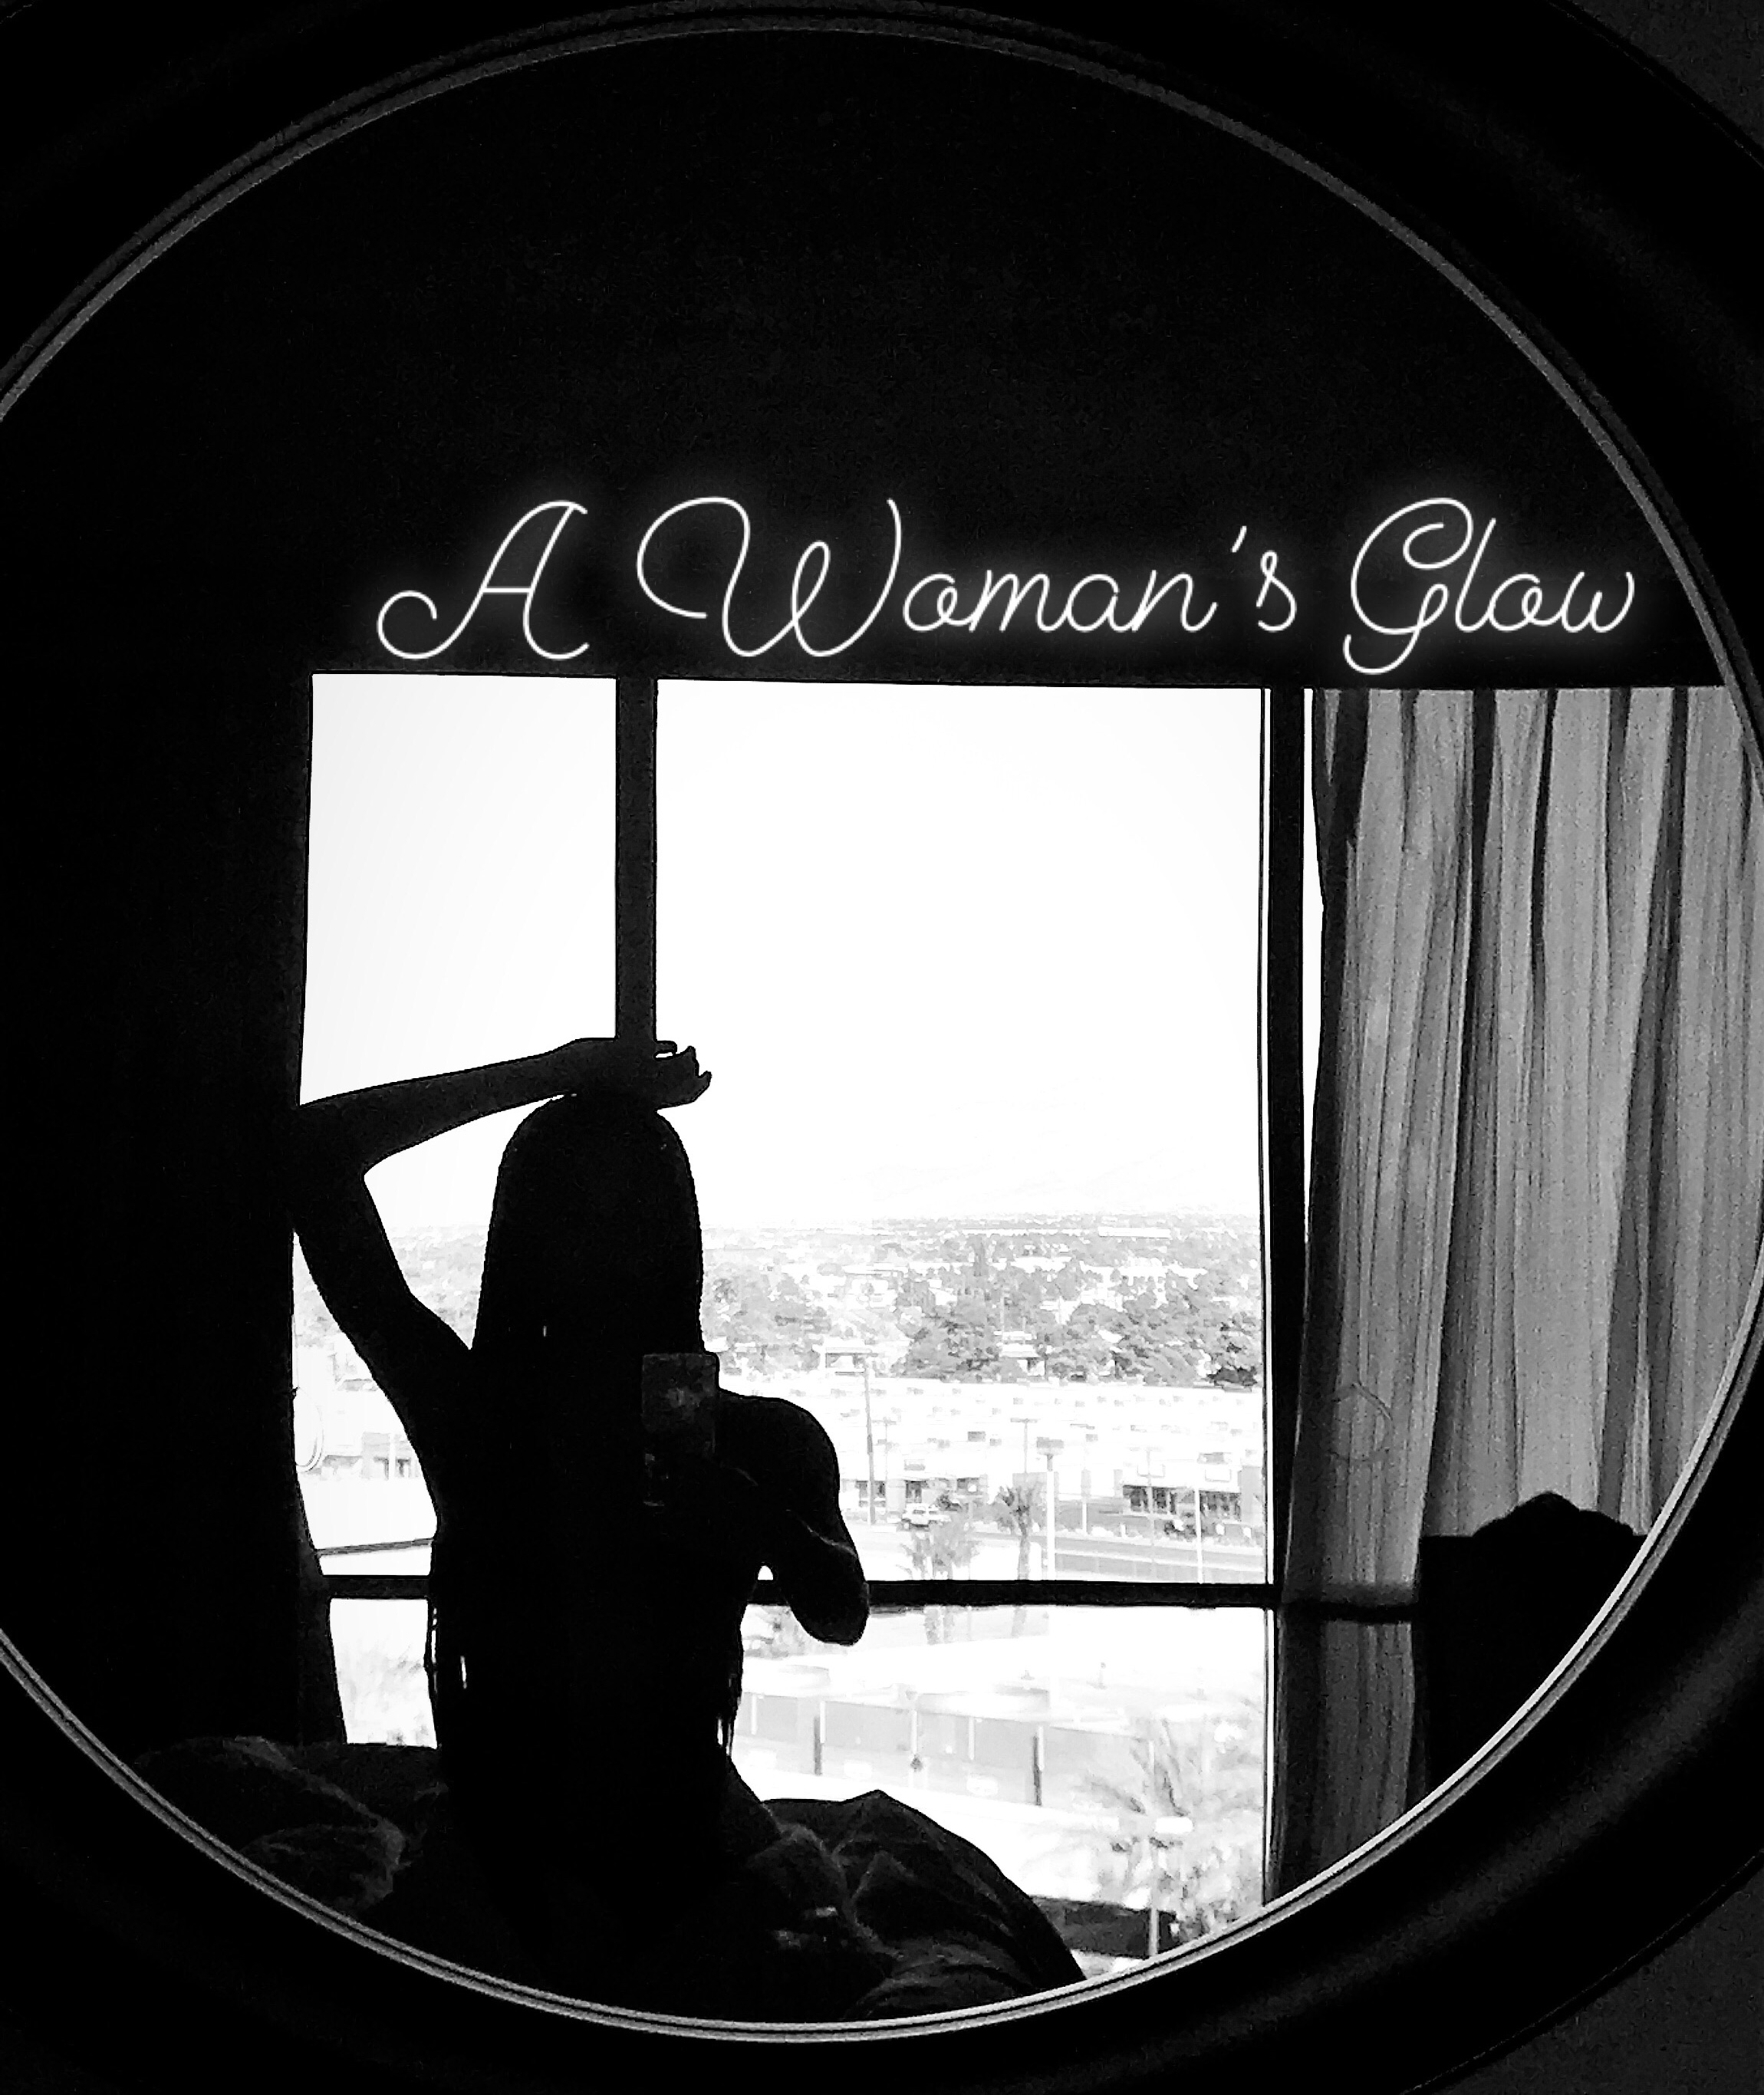 A WOMAN'S GLOW - WOMEN'S HISTORY MONTH. SONGS ABOUT & FROM WOMEN WITH ATTITUDE, WORTH, HARDCORE STRENGTH, COURAGE, POWER, & EXPERIENCES THAT WE CAN RELATE TO. LET'S CONTINUE TO GLOW LADIES, ENJOY !!FOLLOW & LISTEN ON SPOTIFY AND APPLE MUSIC